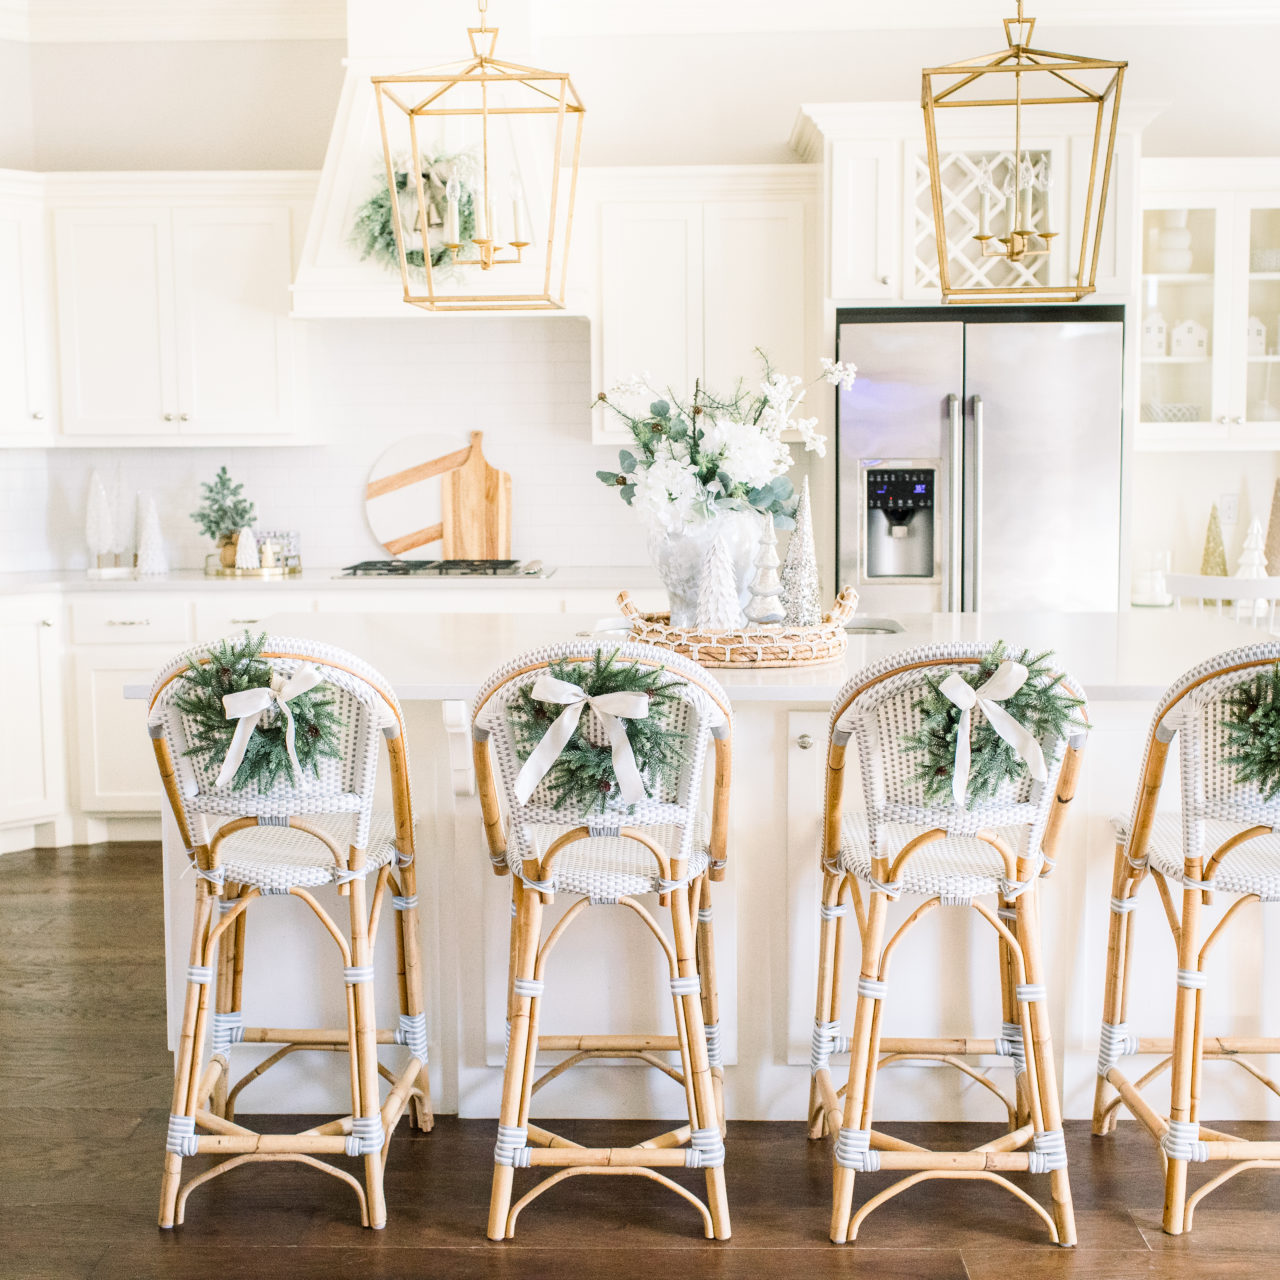 Bright and airy Christmas kitchen